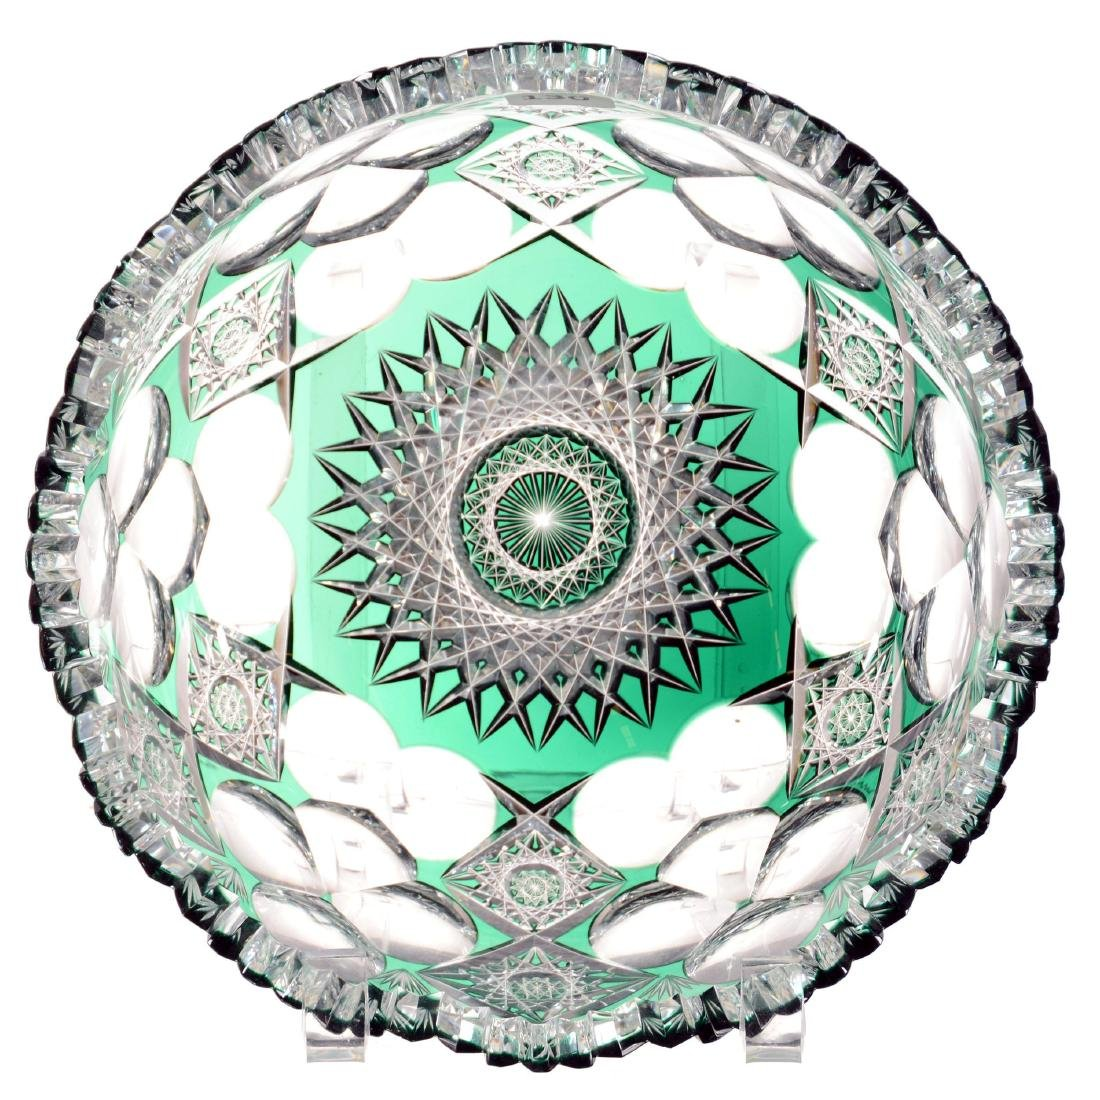 "Bowl - 3"" X 8.5"" - Emerald Green Cut to Clear"